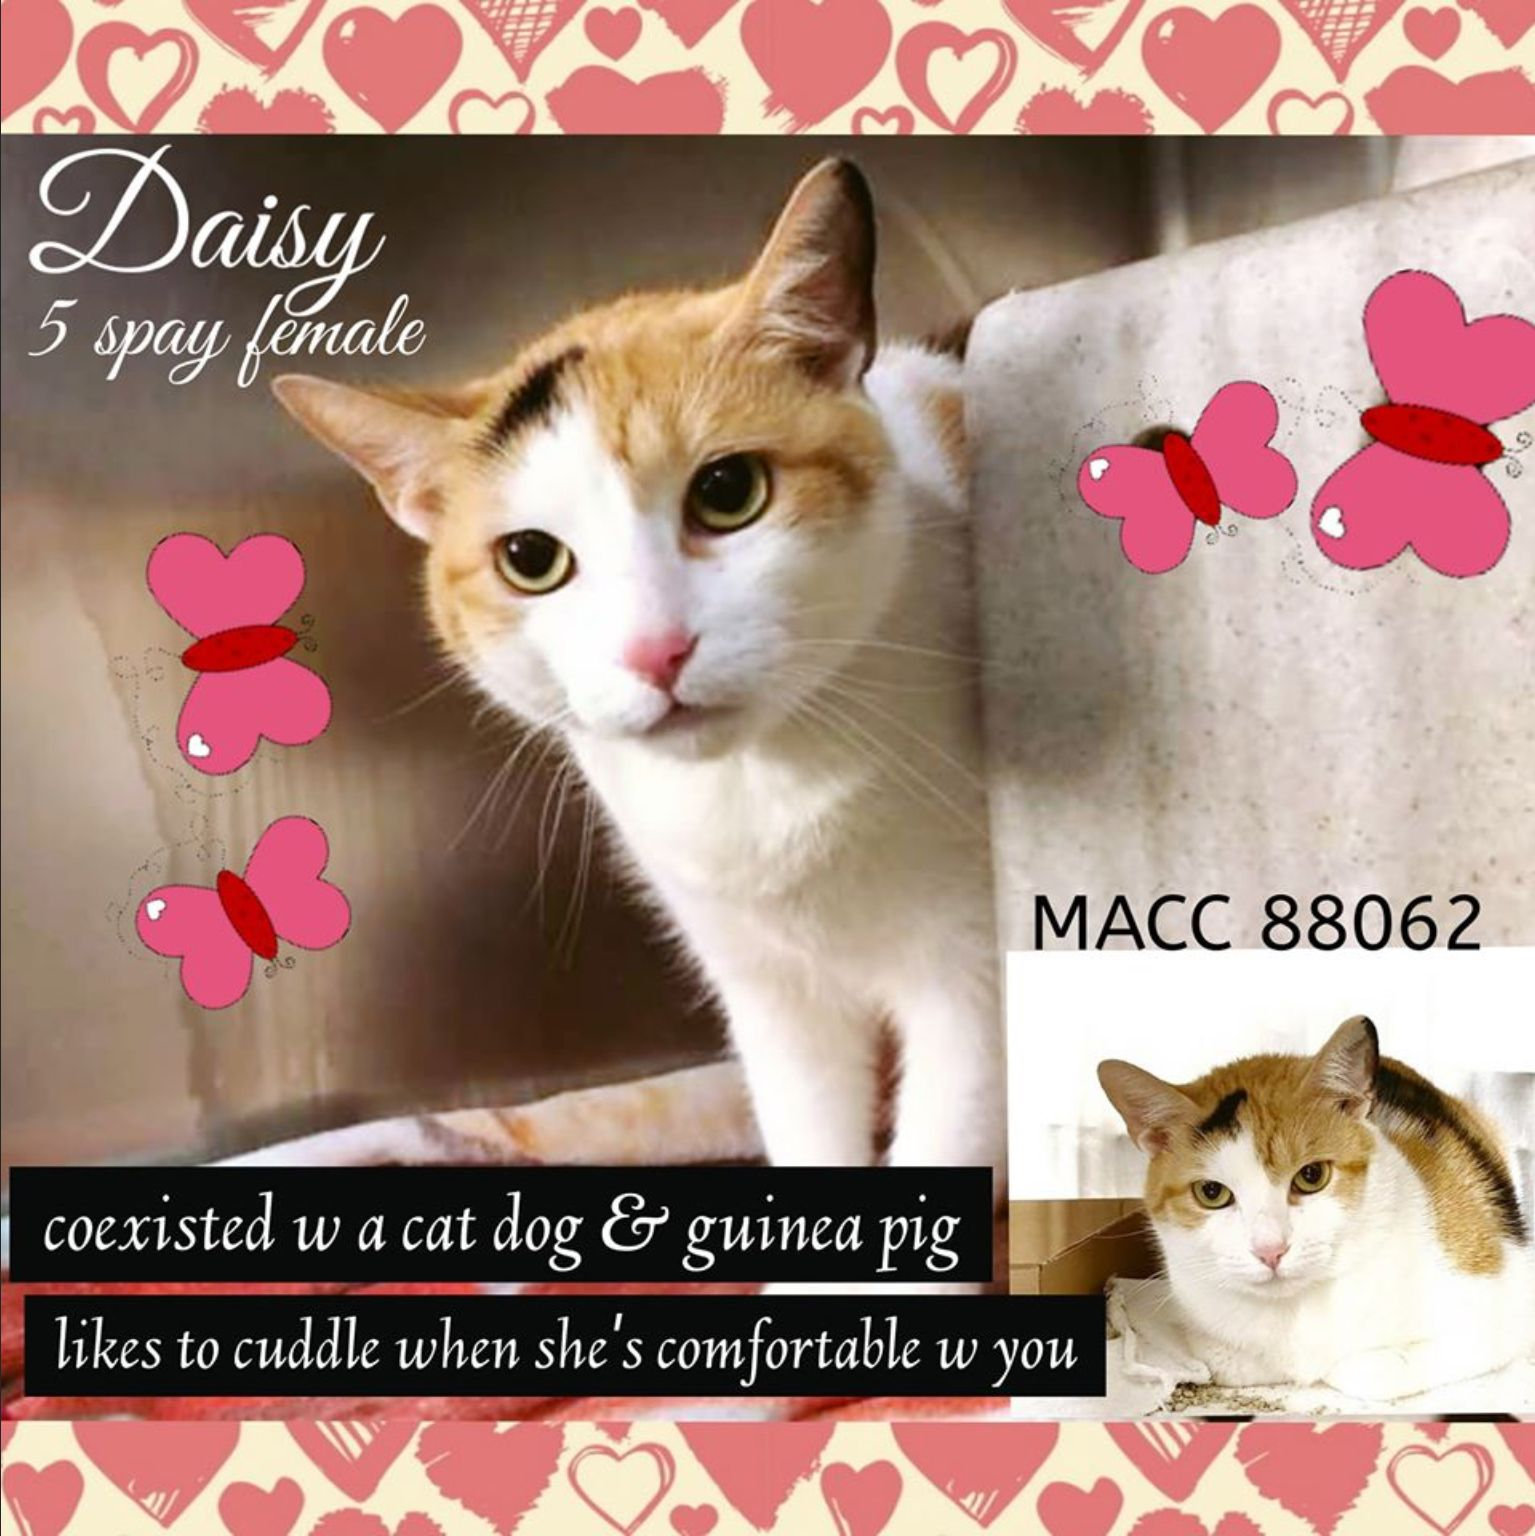 Daisy To Die 02 22 2020 In 2020 Cats Foster Cat Paws Rescue